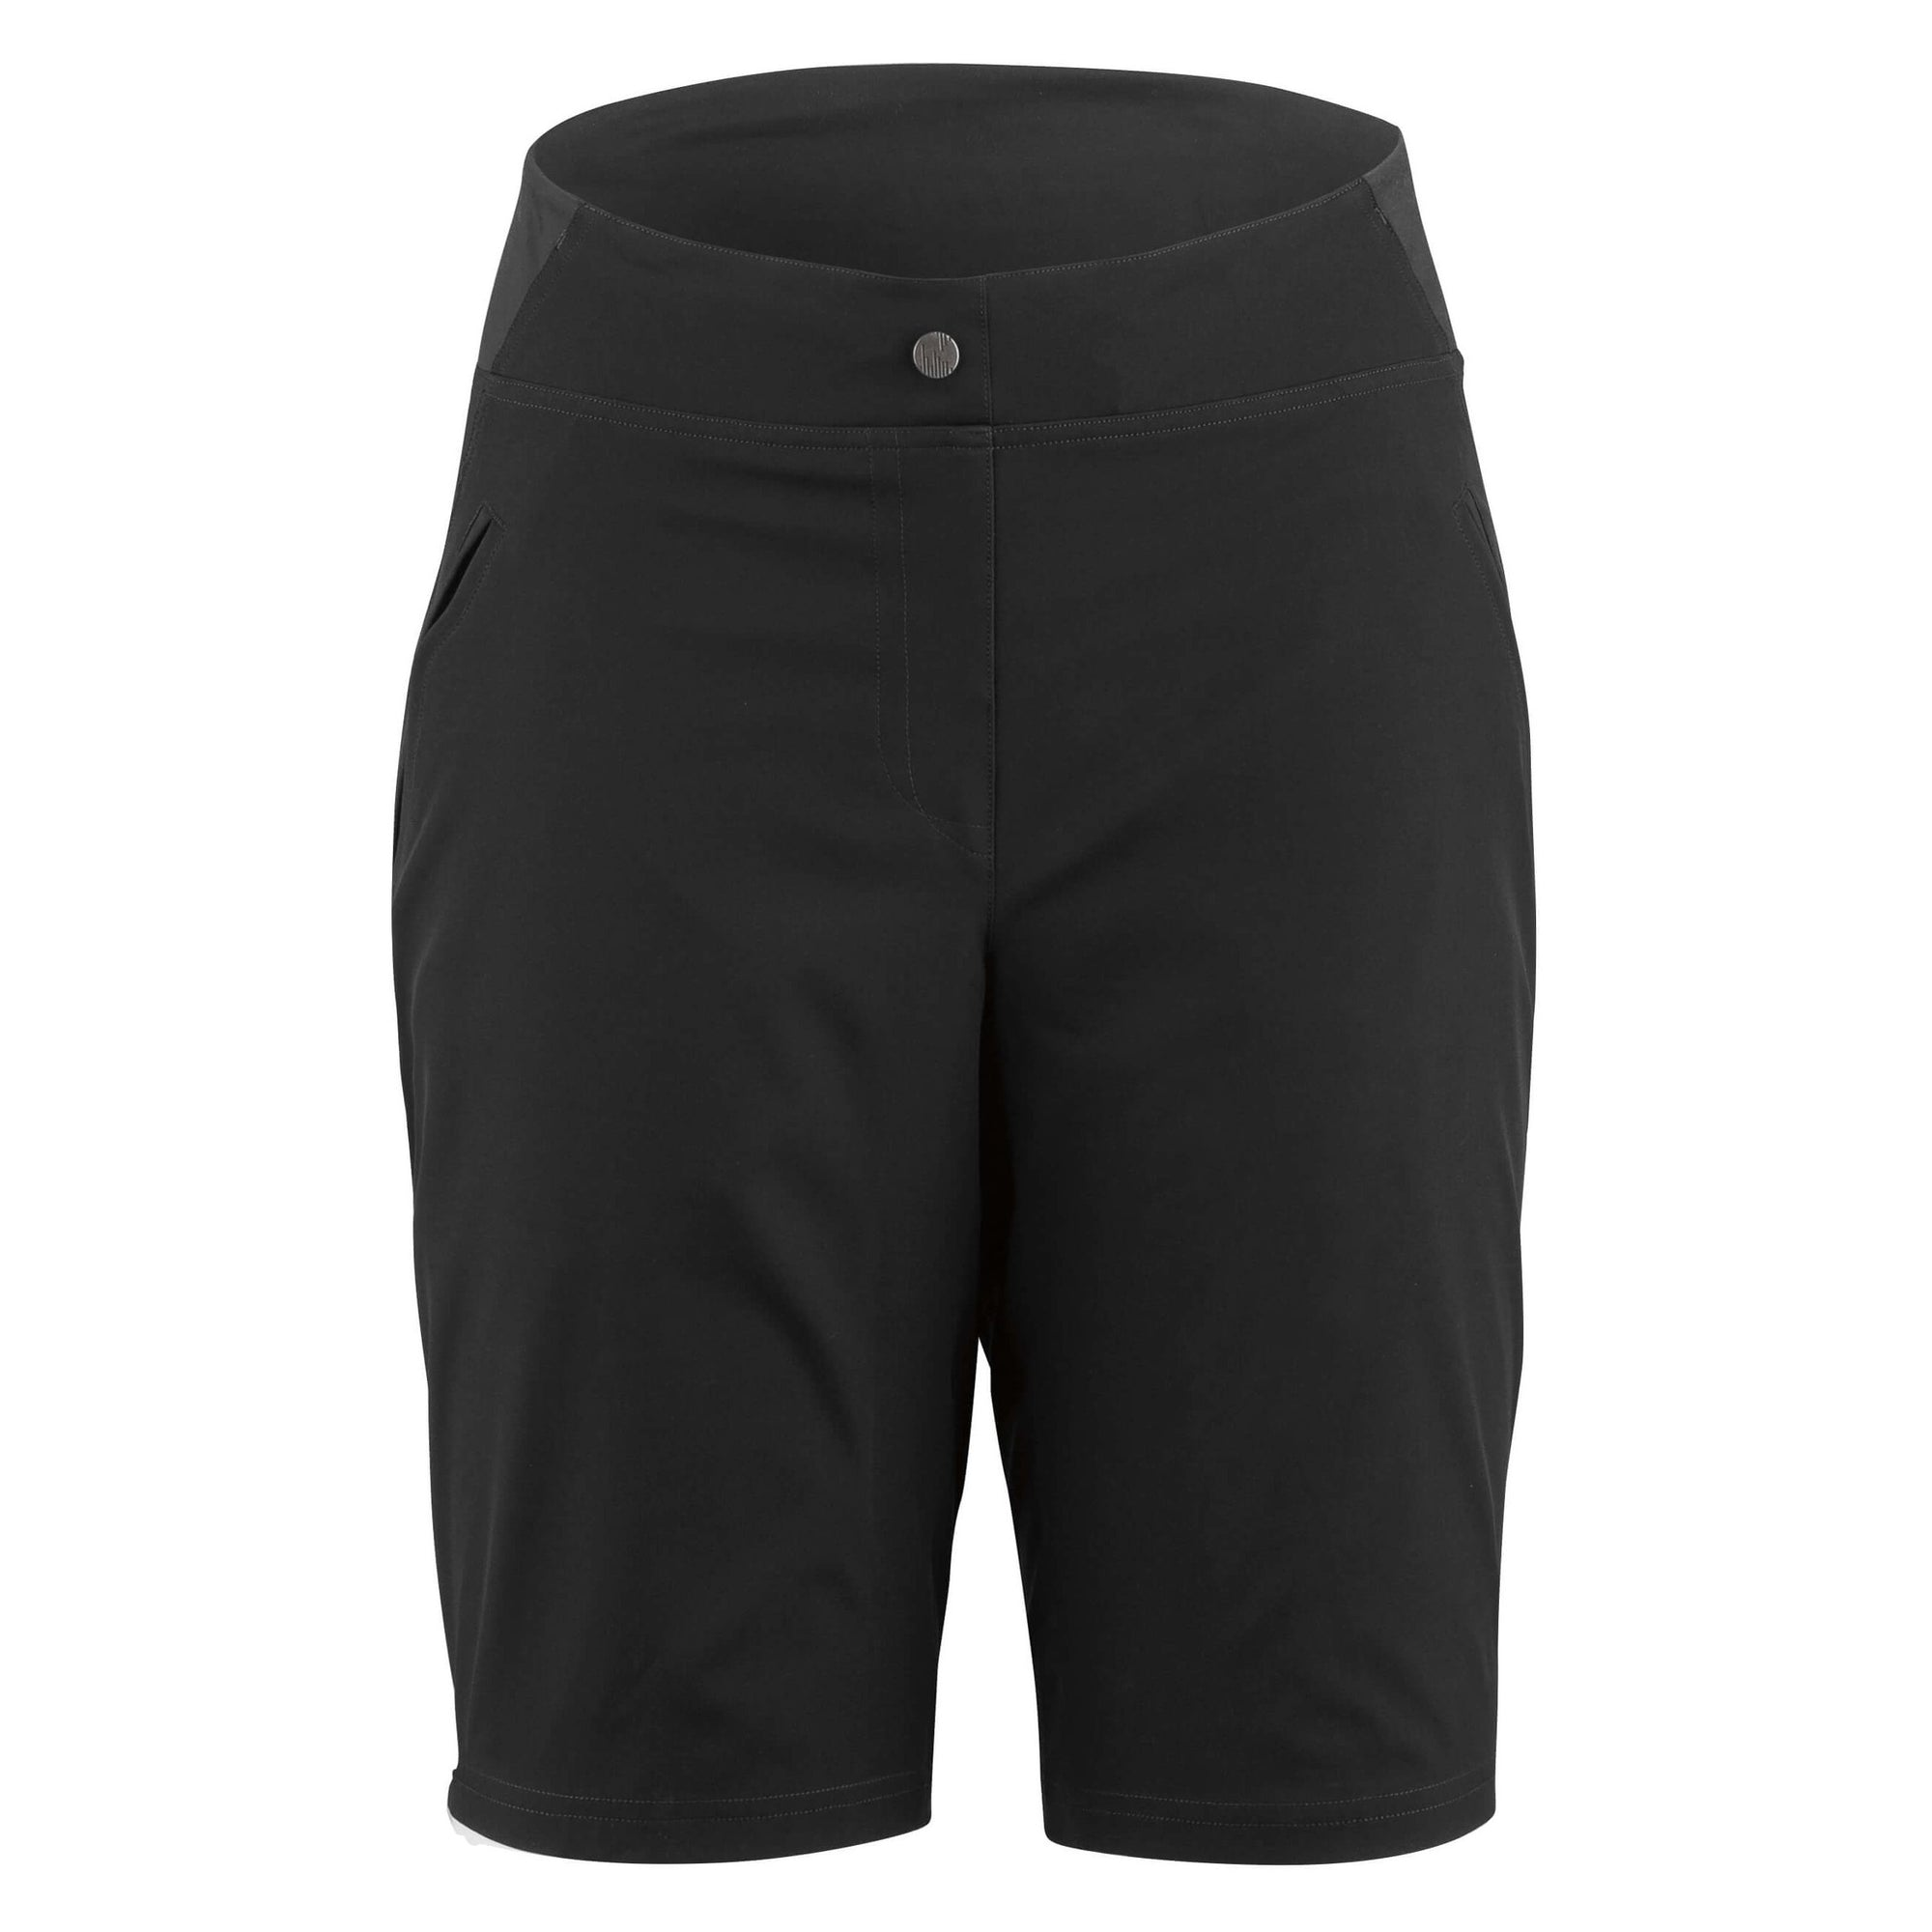 Louis Garneau 2020 Women's Radius 2 Short